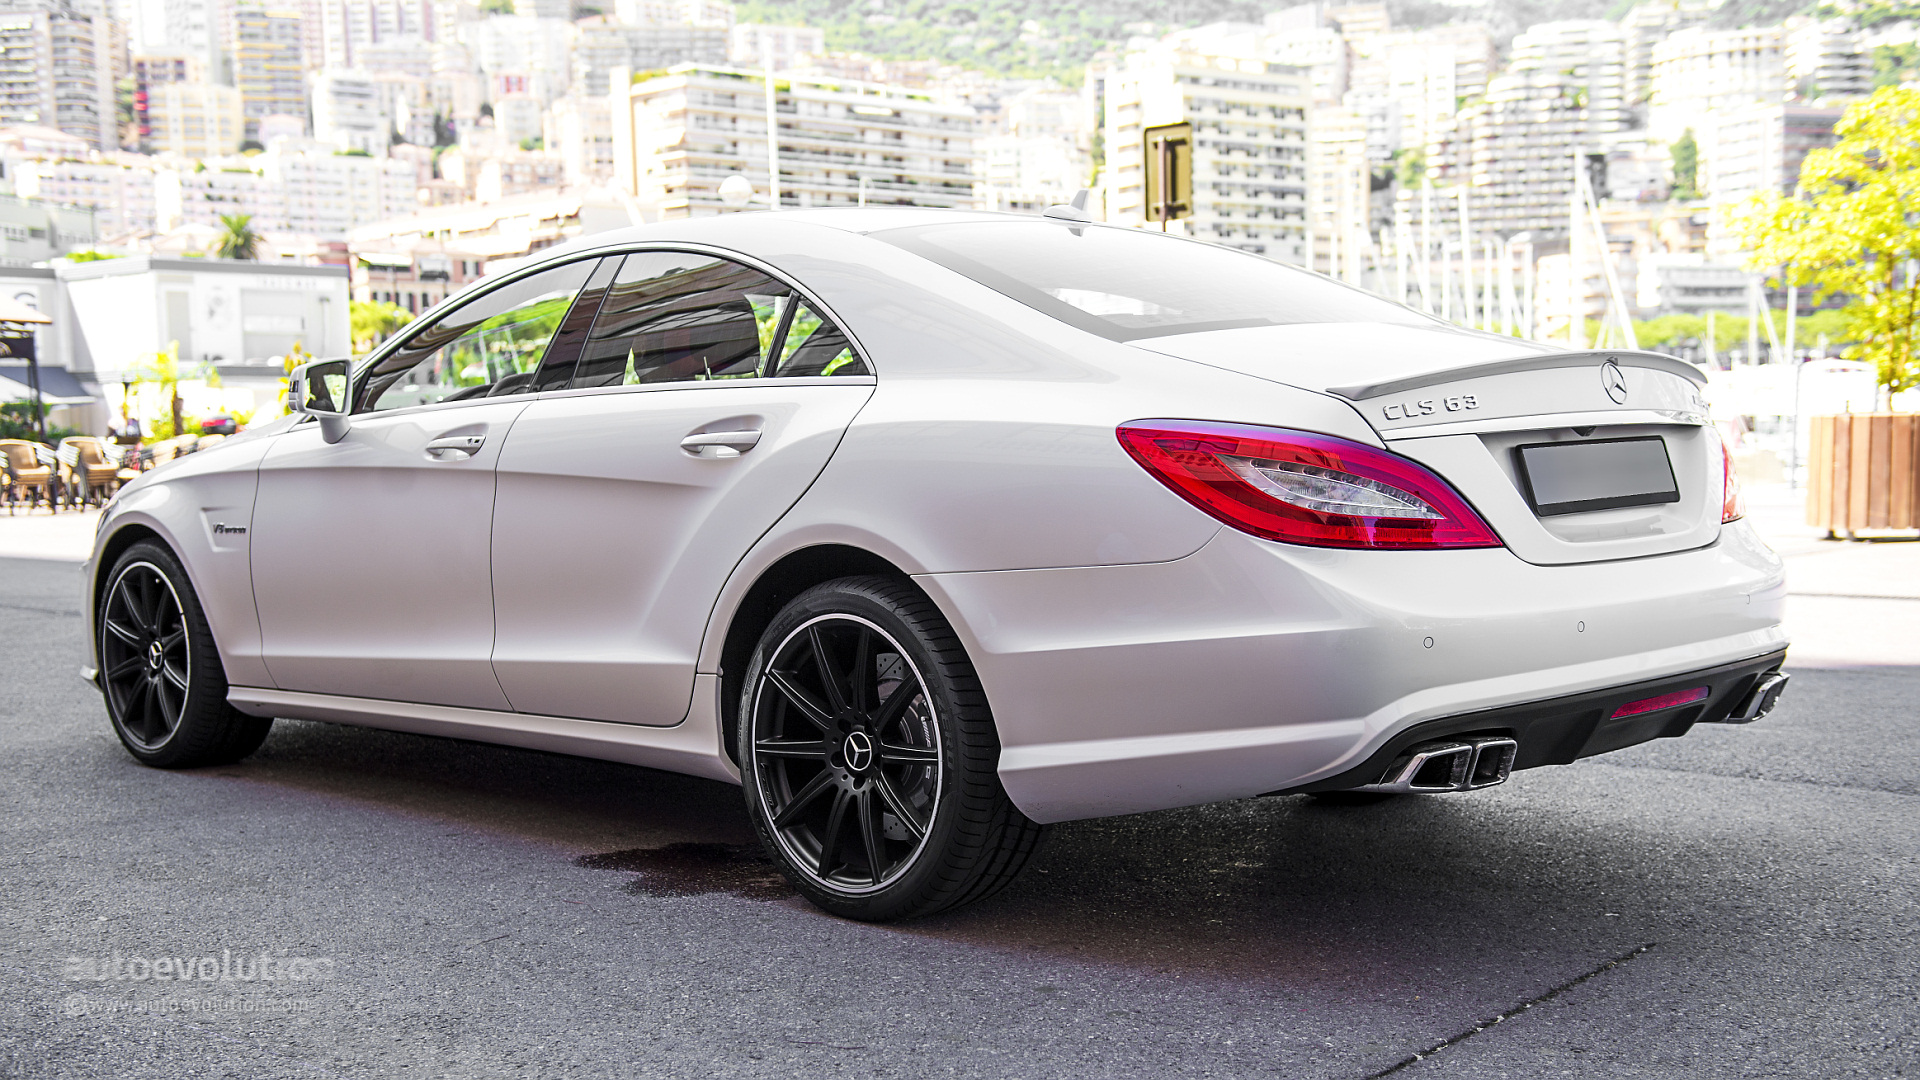 Mercedes Benz Cls 63 Amg 4matic Tested By Autoevolution